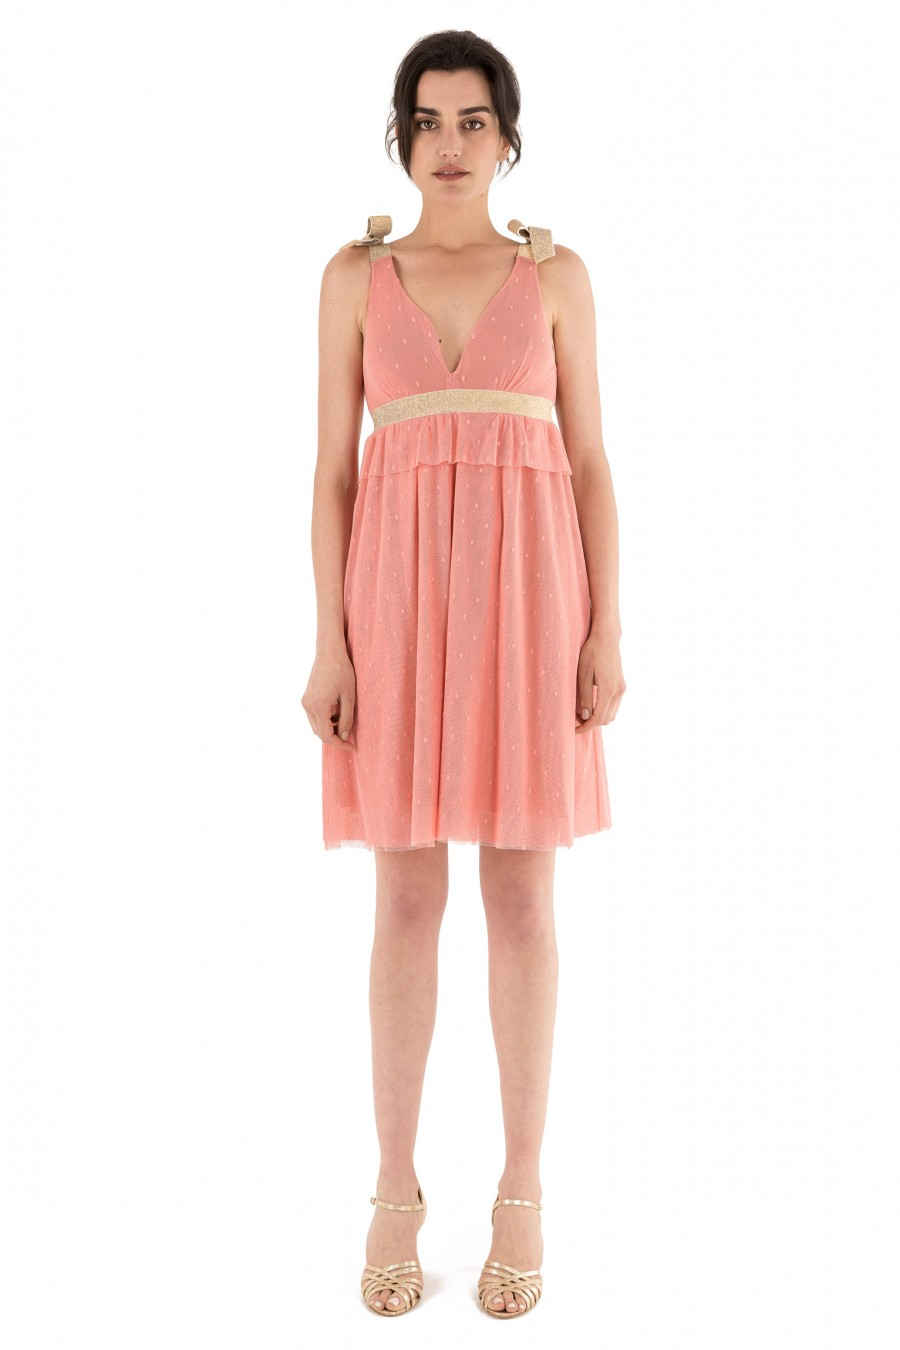 Pink empire dress with golden ribbon